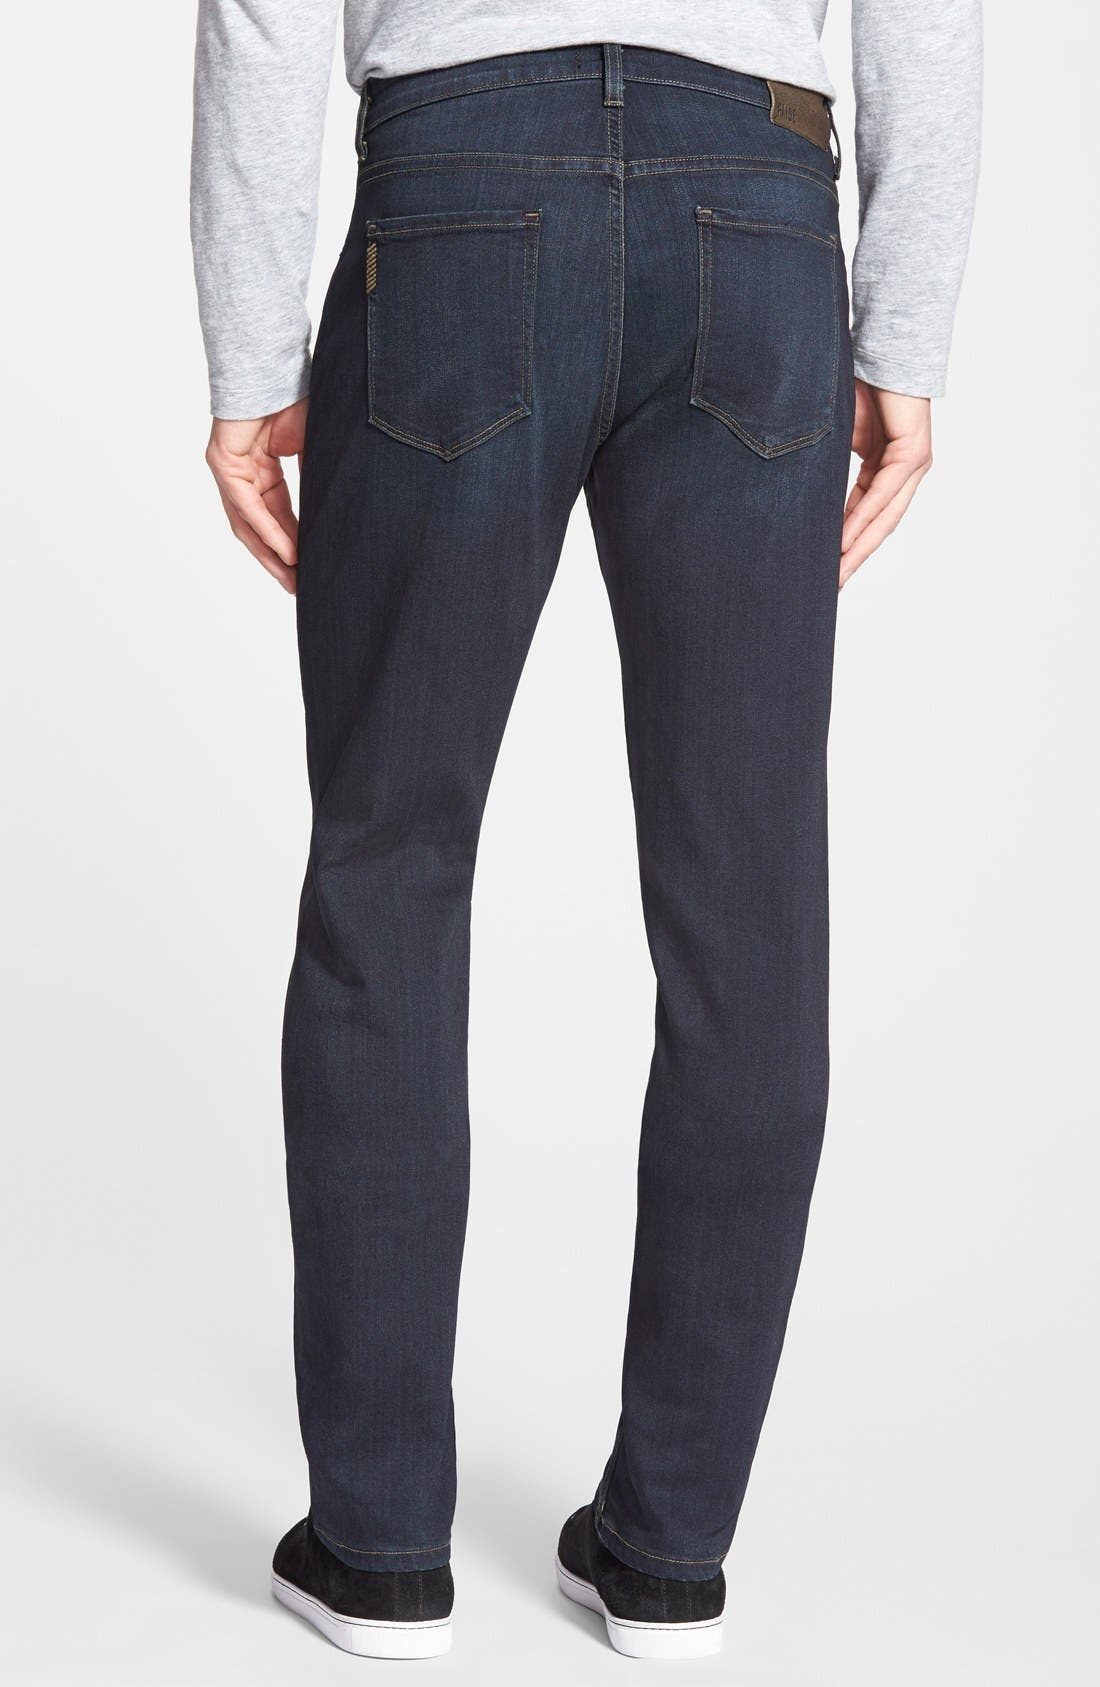 PAIGE,                             Transcend - Federal Slim Straight Leg Jeans,                             Alternate thumbnail 4, color,                             CELLAR